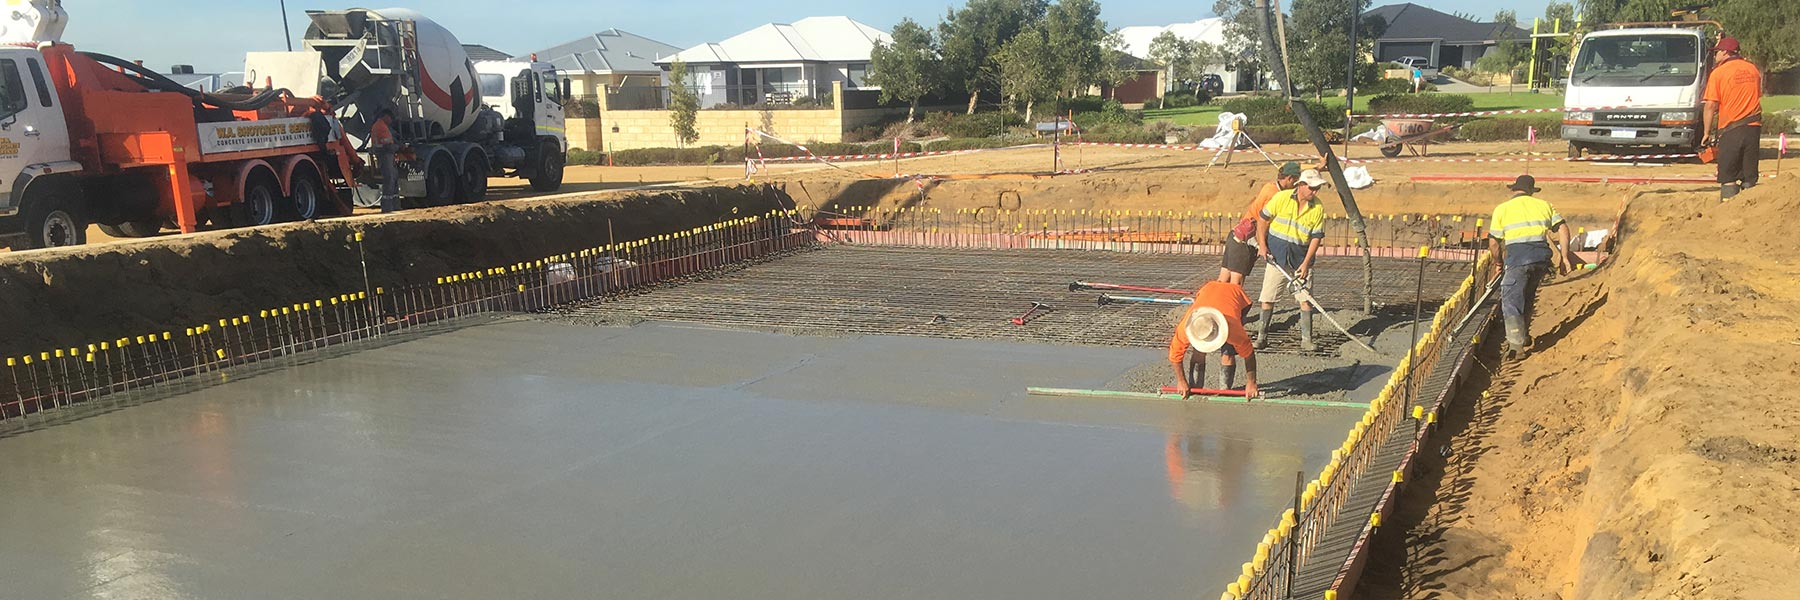 Stateswim Pool Construction